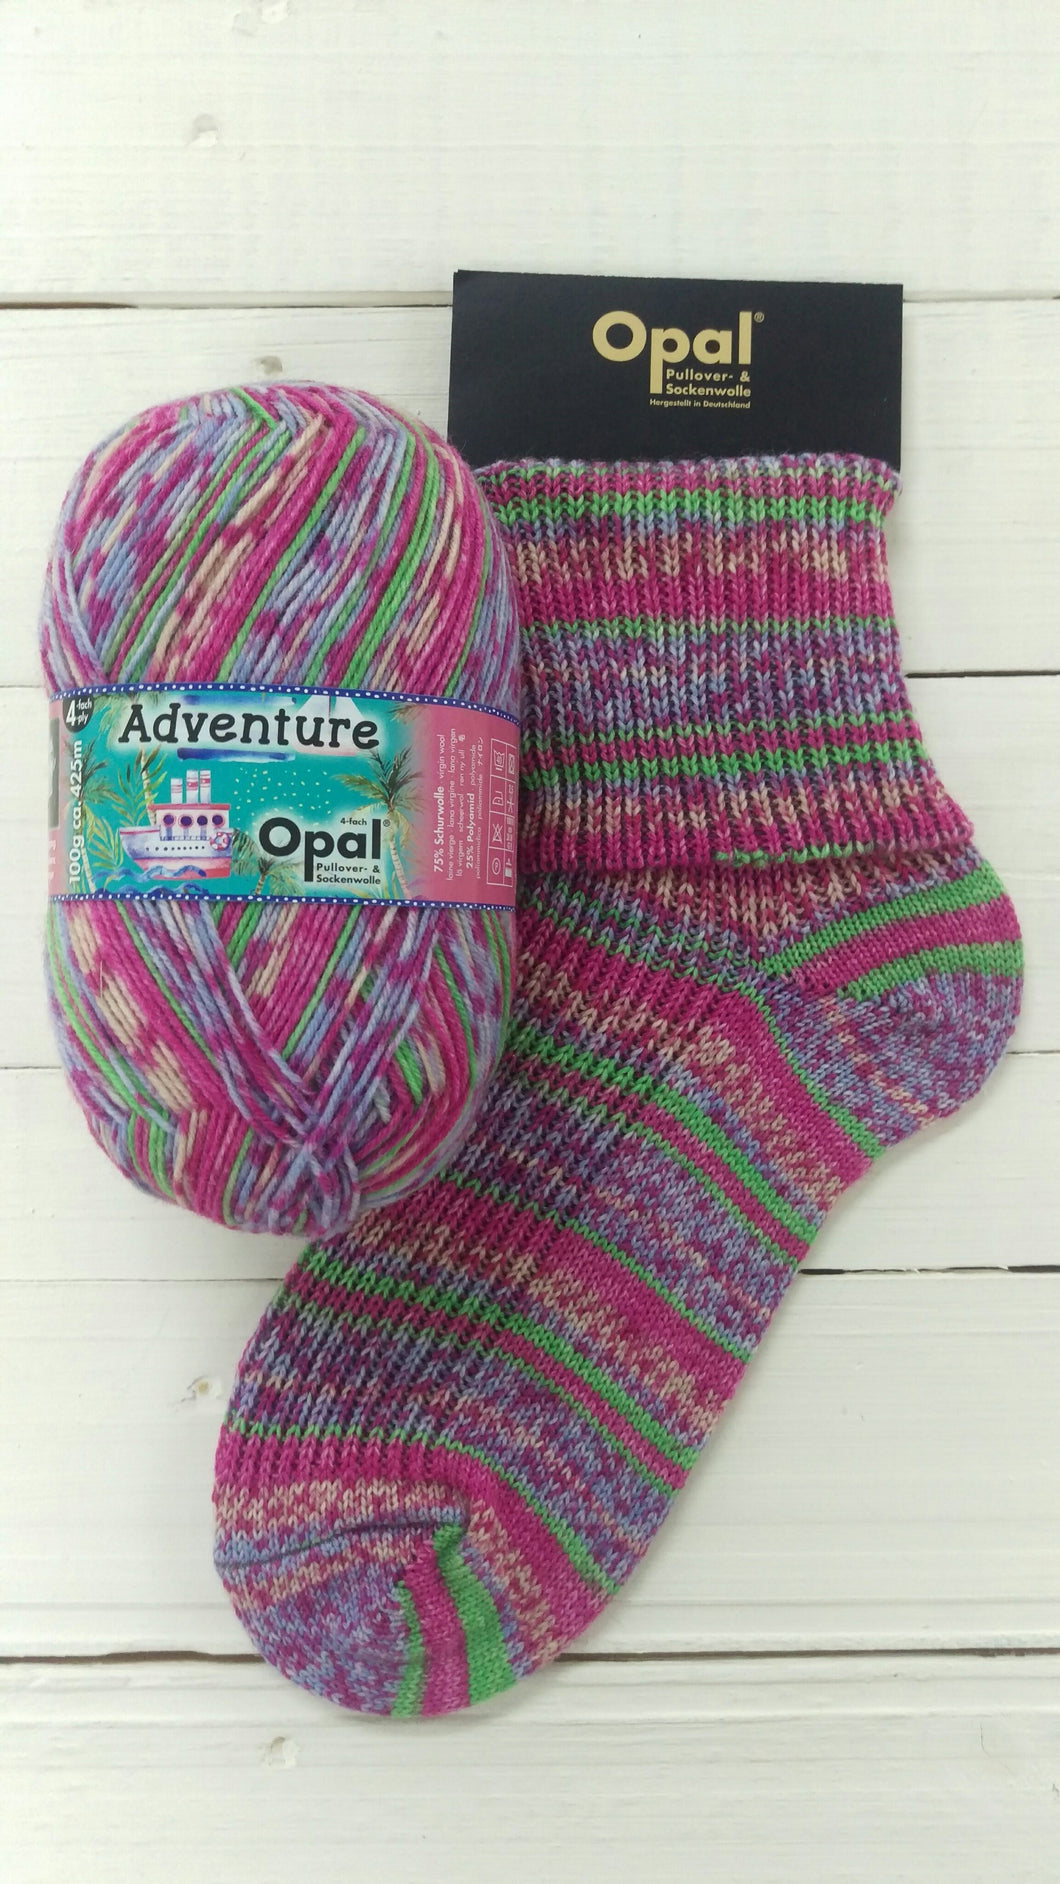 Opal Adventure 4 ply Sock Yarn